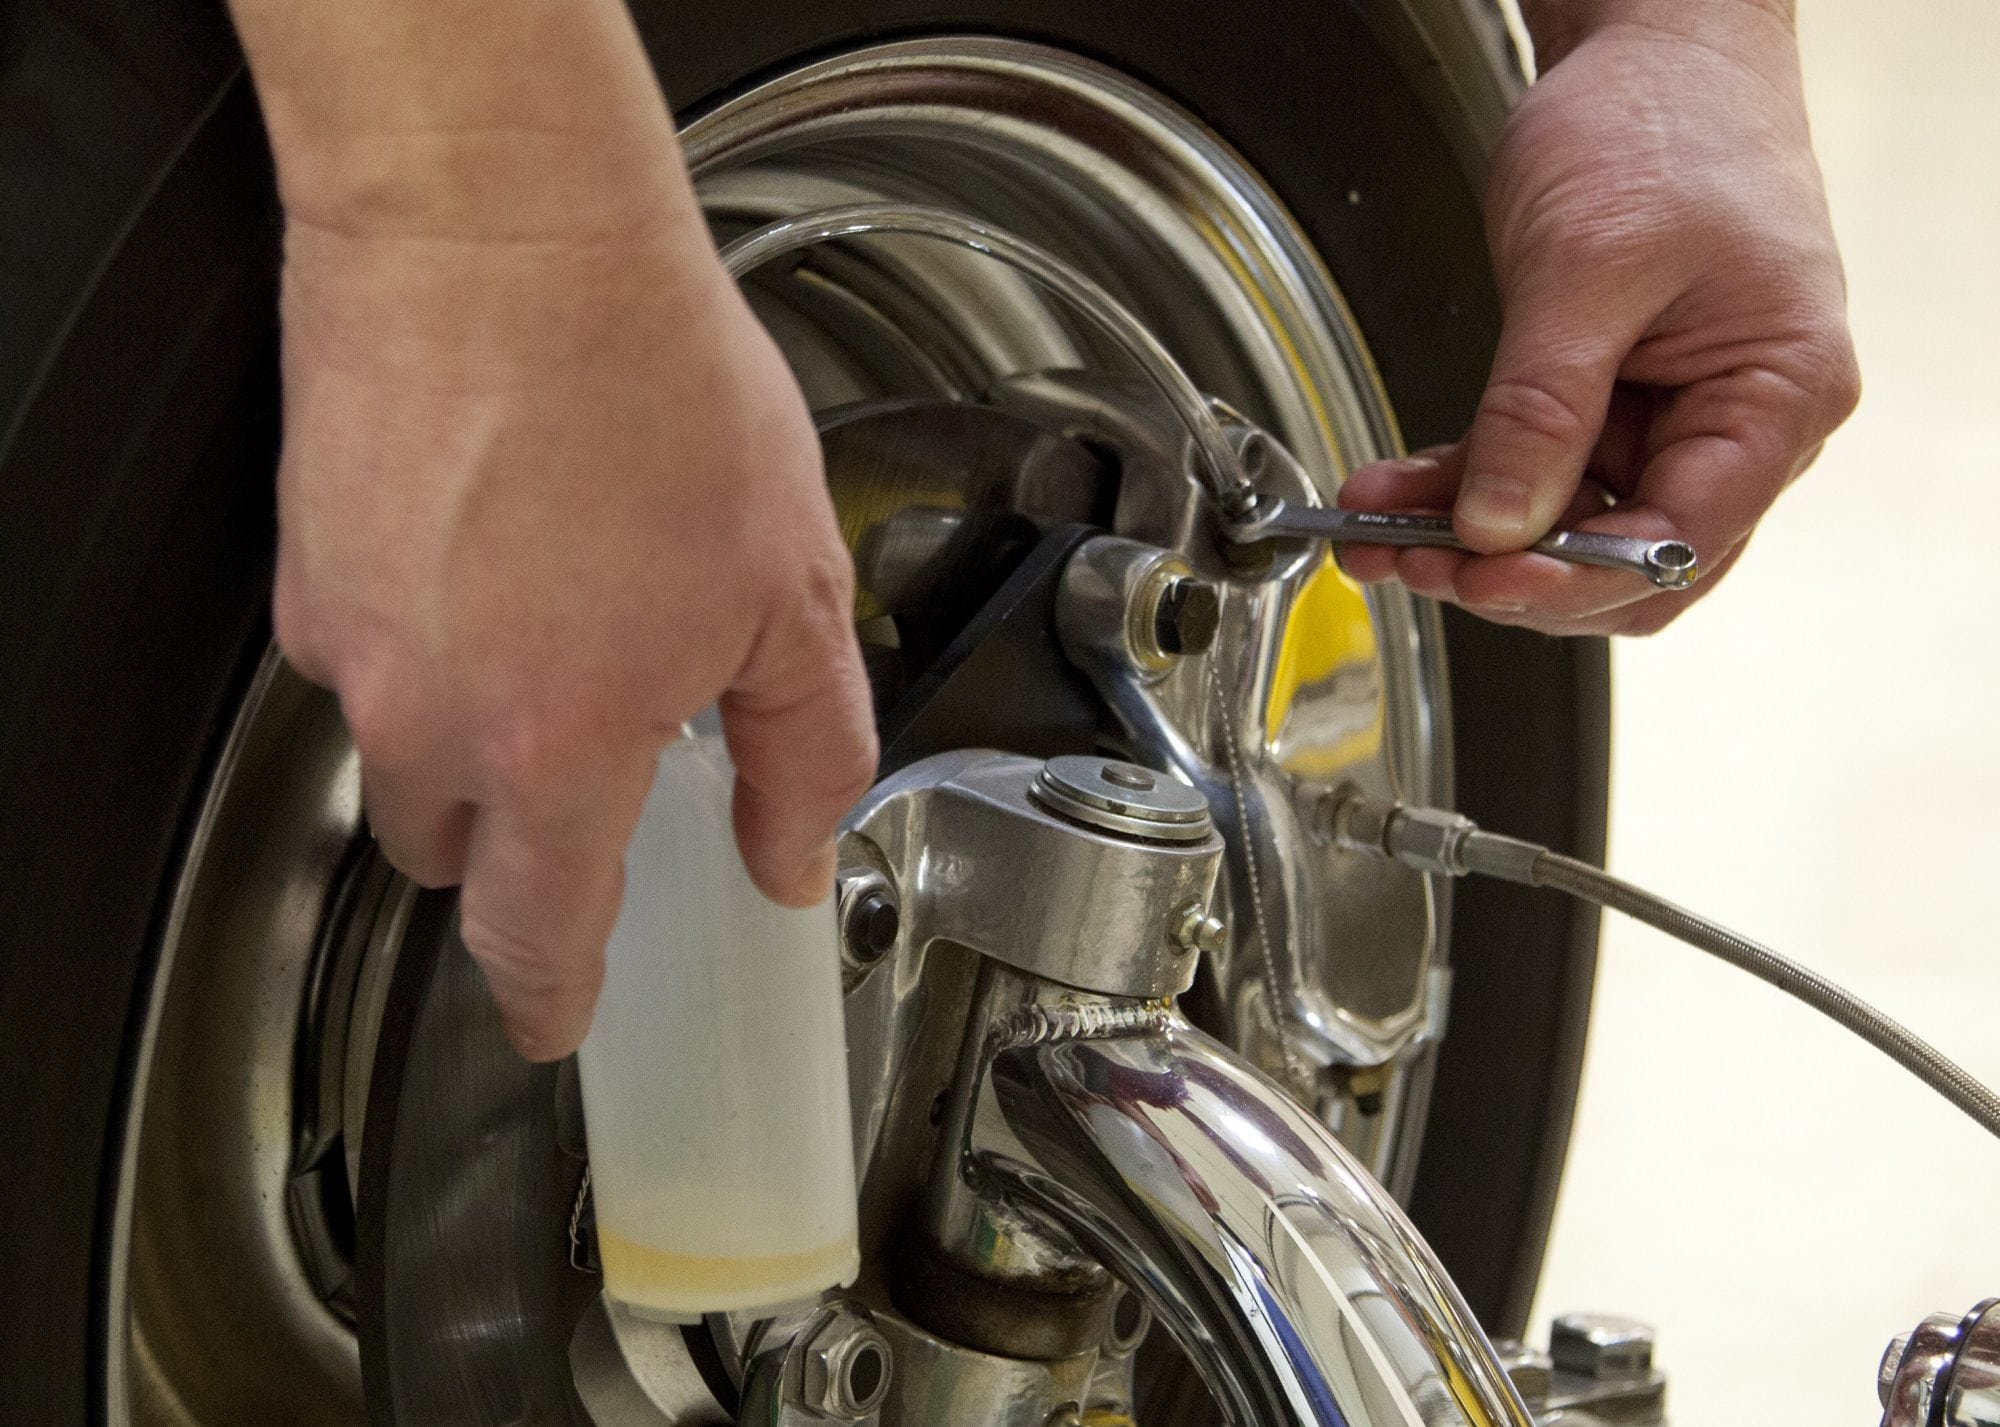 How To Bleed Brakes - CarNewsCafe